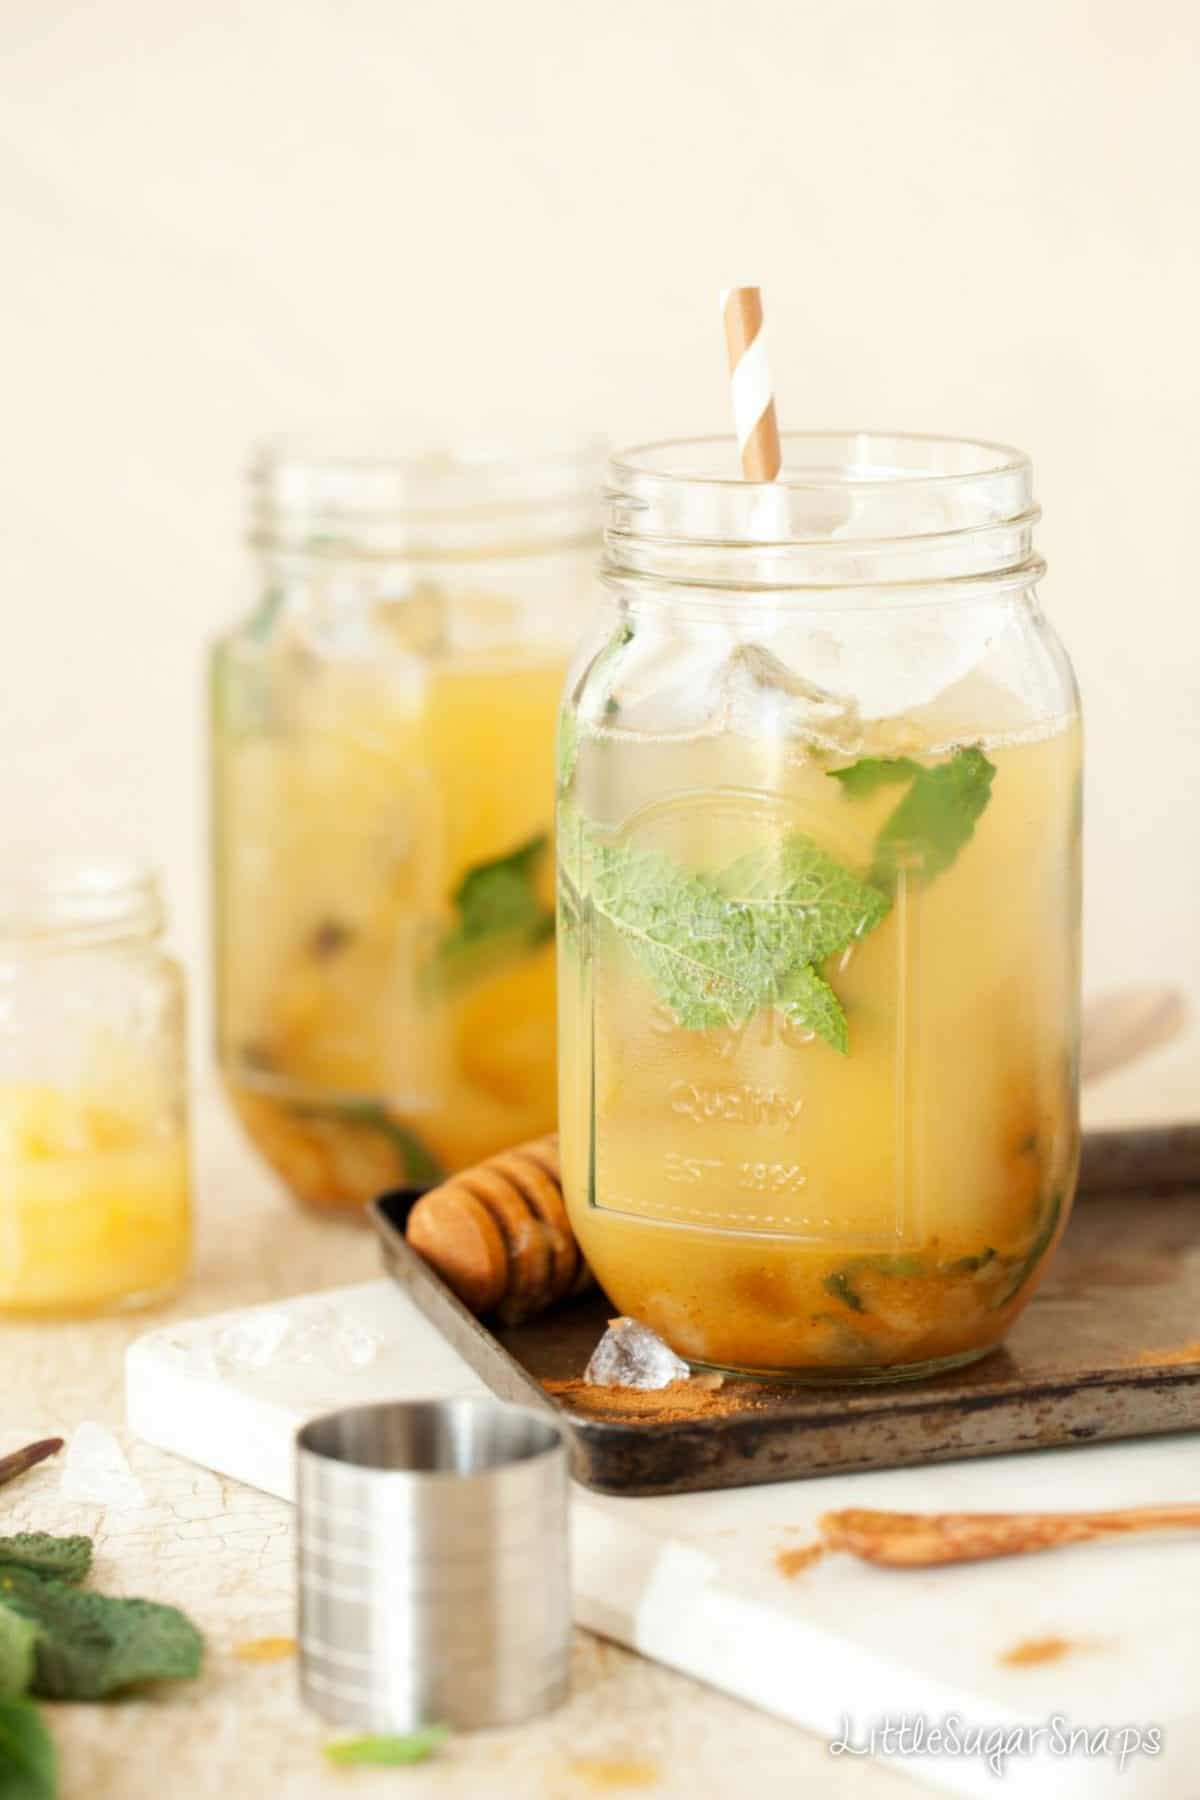 A long, pineapple juice based cocktail presented in a jam jar